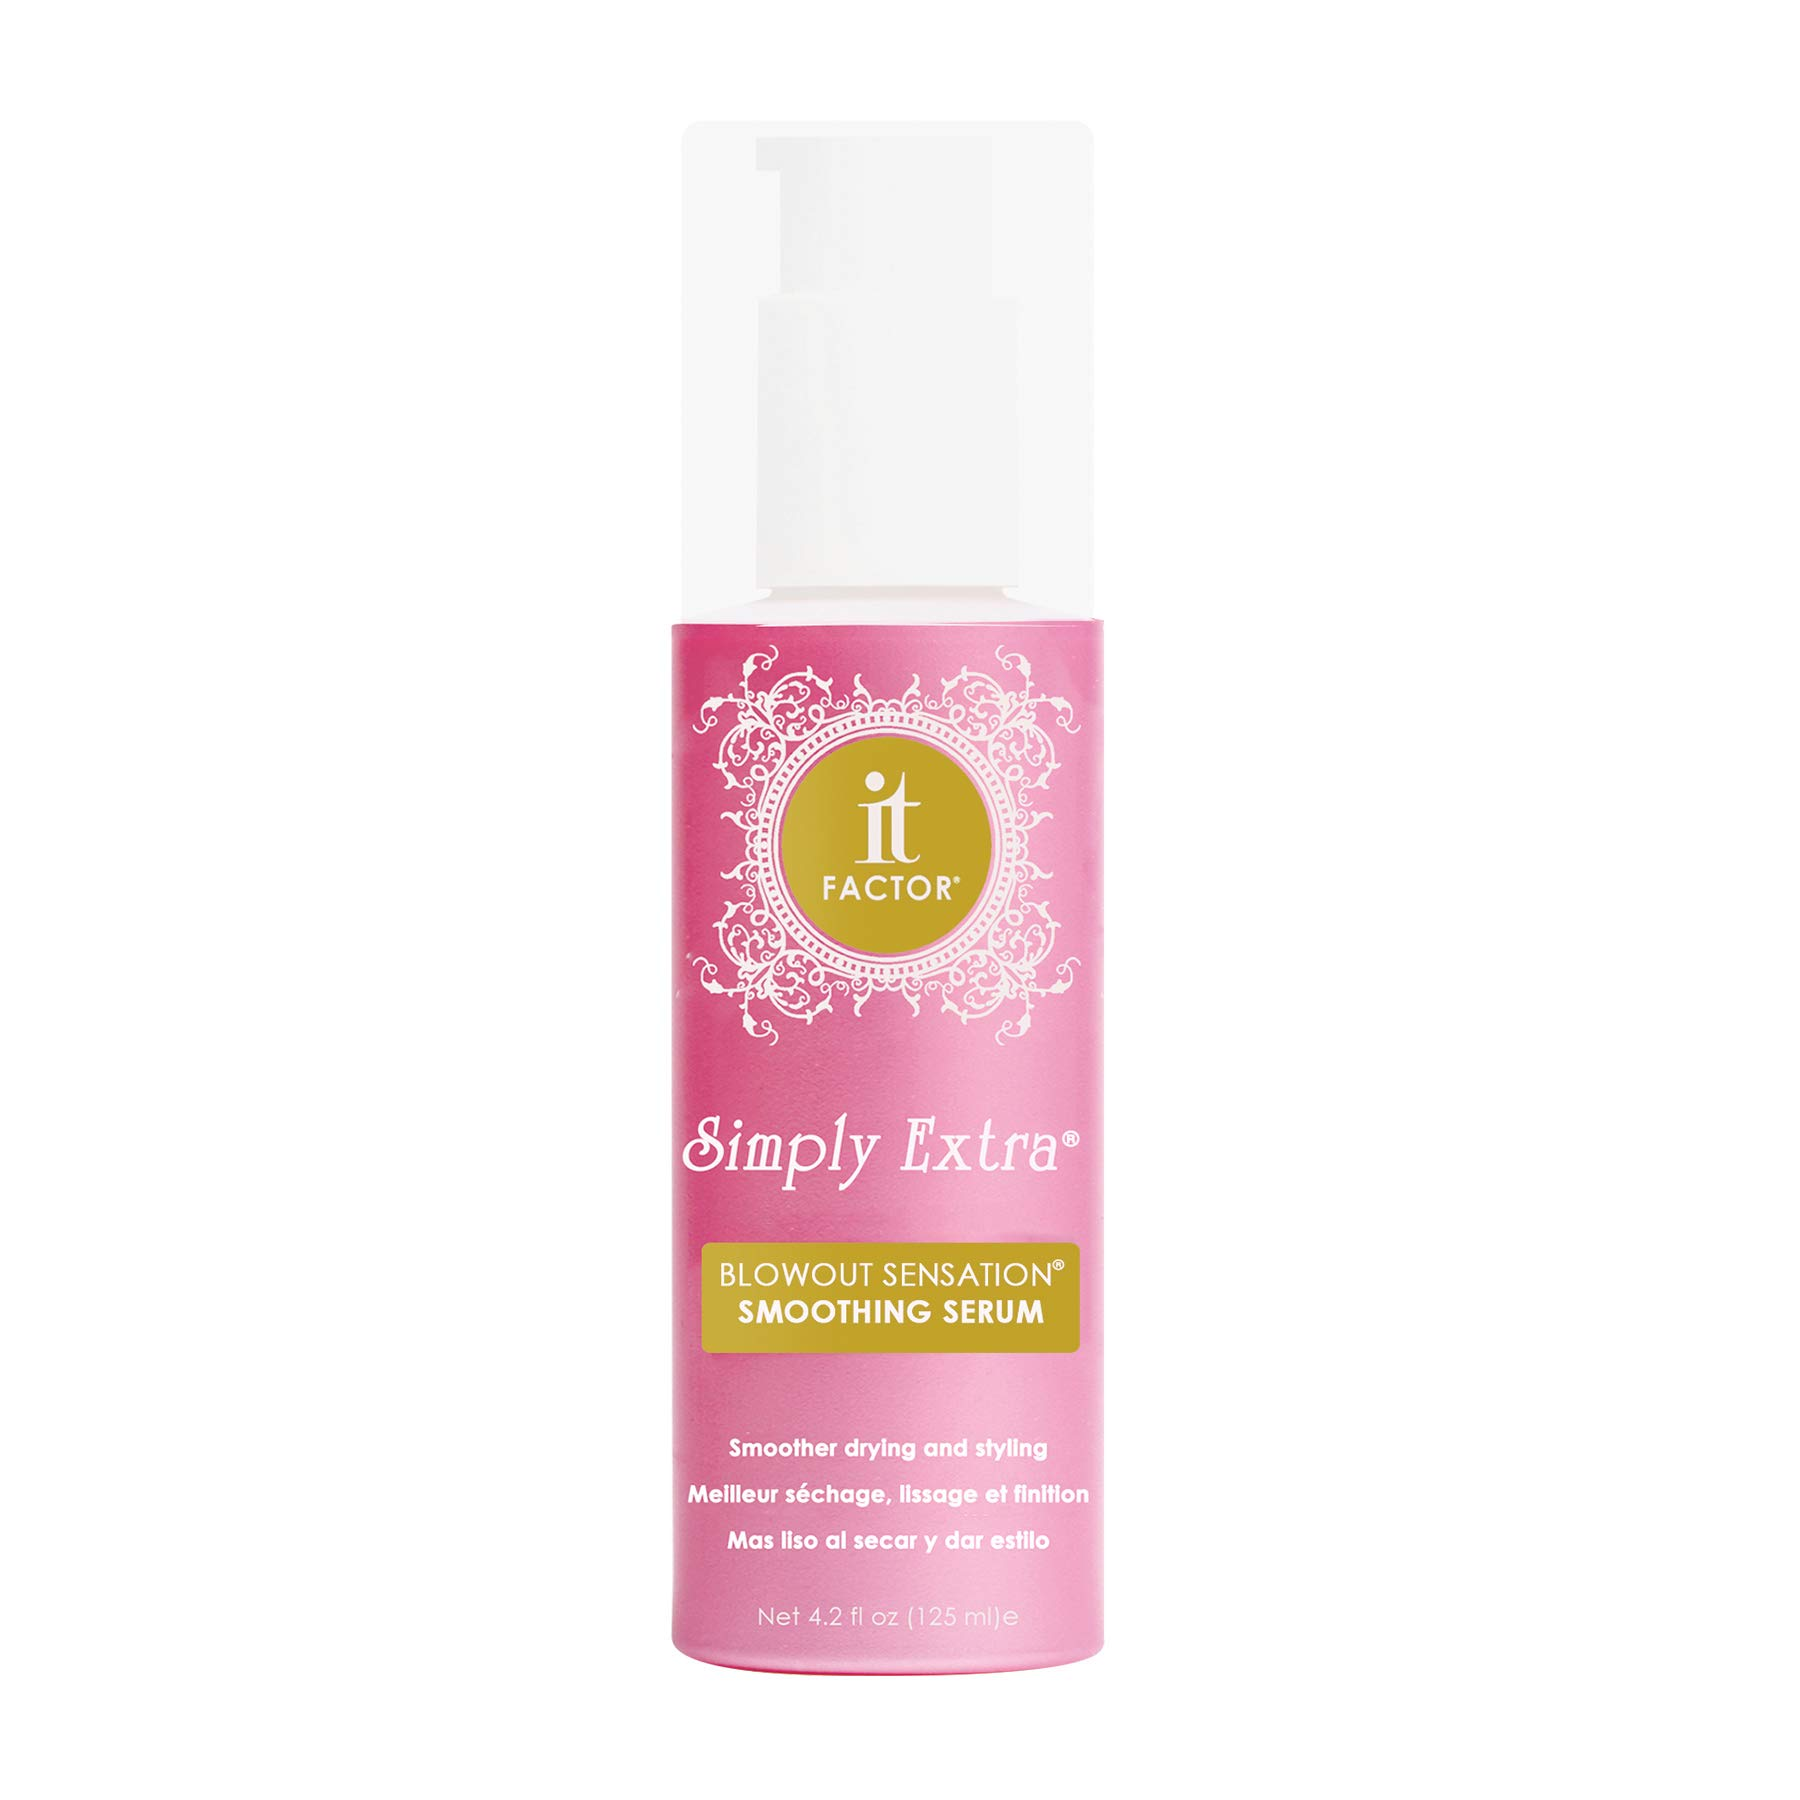 It Factor - Simply Extra - Blowout Sensation - Smoothing Serum - Professional Grade Salon Quality Hair Care - For All Hair Types - Hairdresser Pros Love It - Original Formula by It Factor